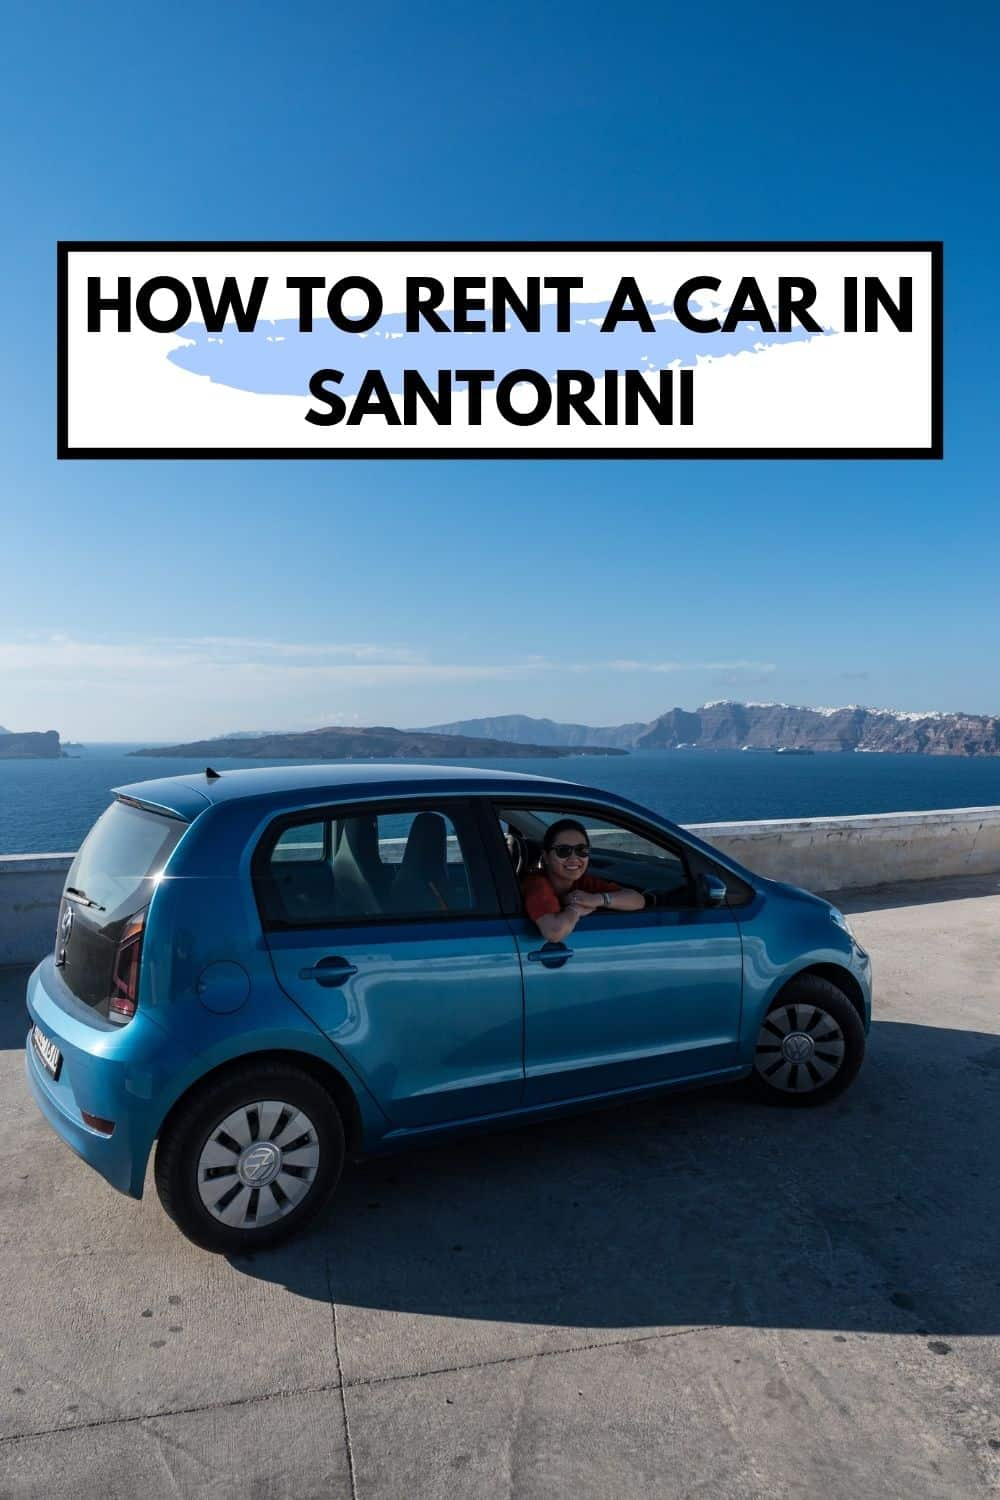 Where and How To Rent a Car in Santorini - Insider Tips